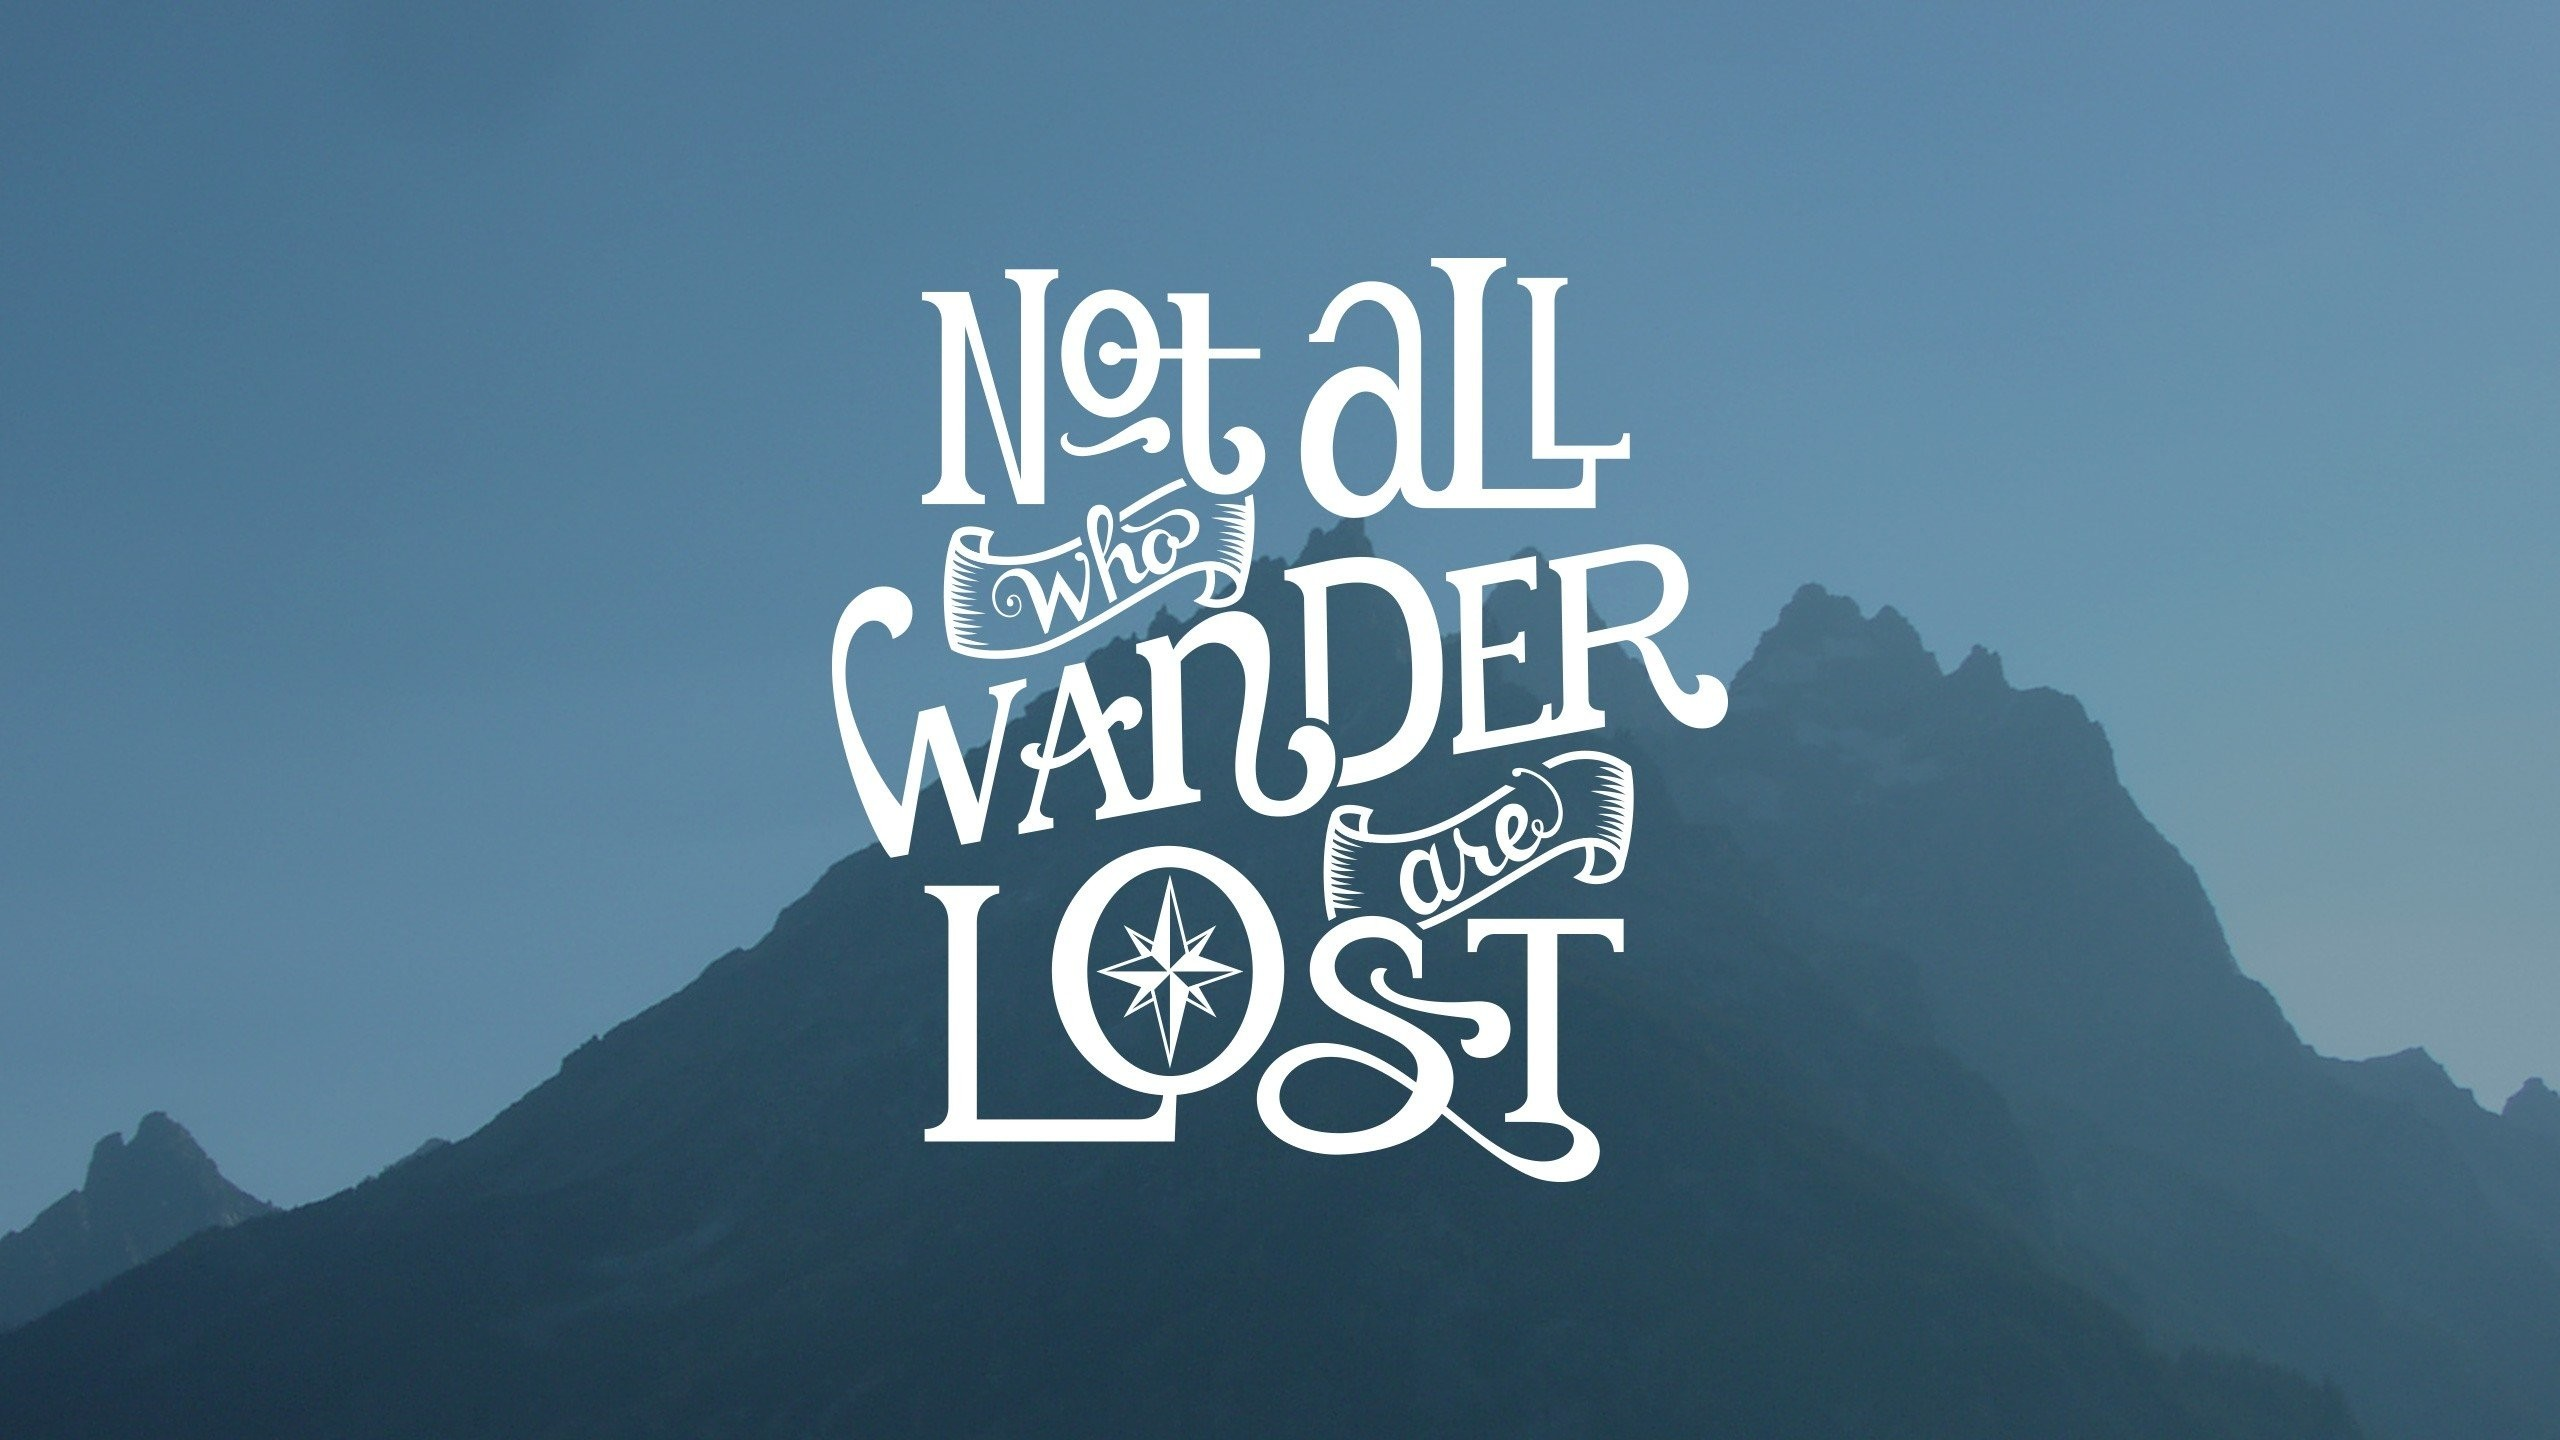 Desktop Backgrounds With Quotes (64+ Images